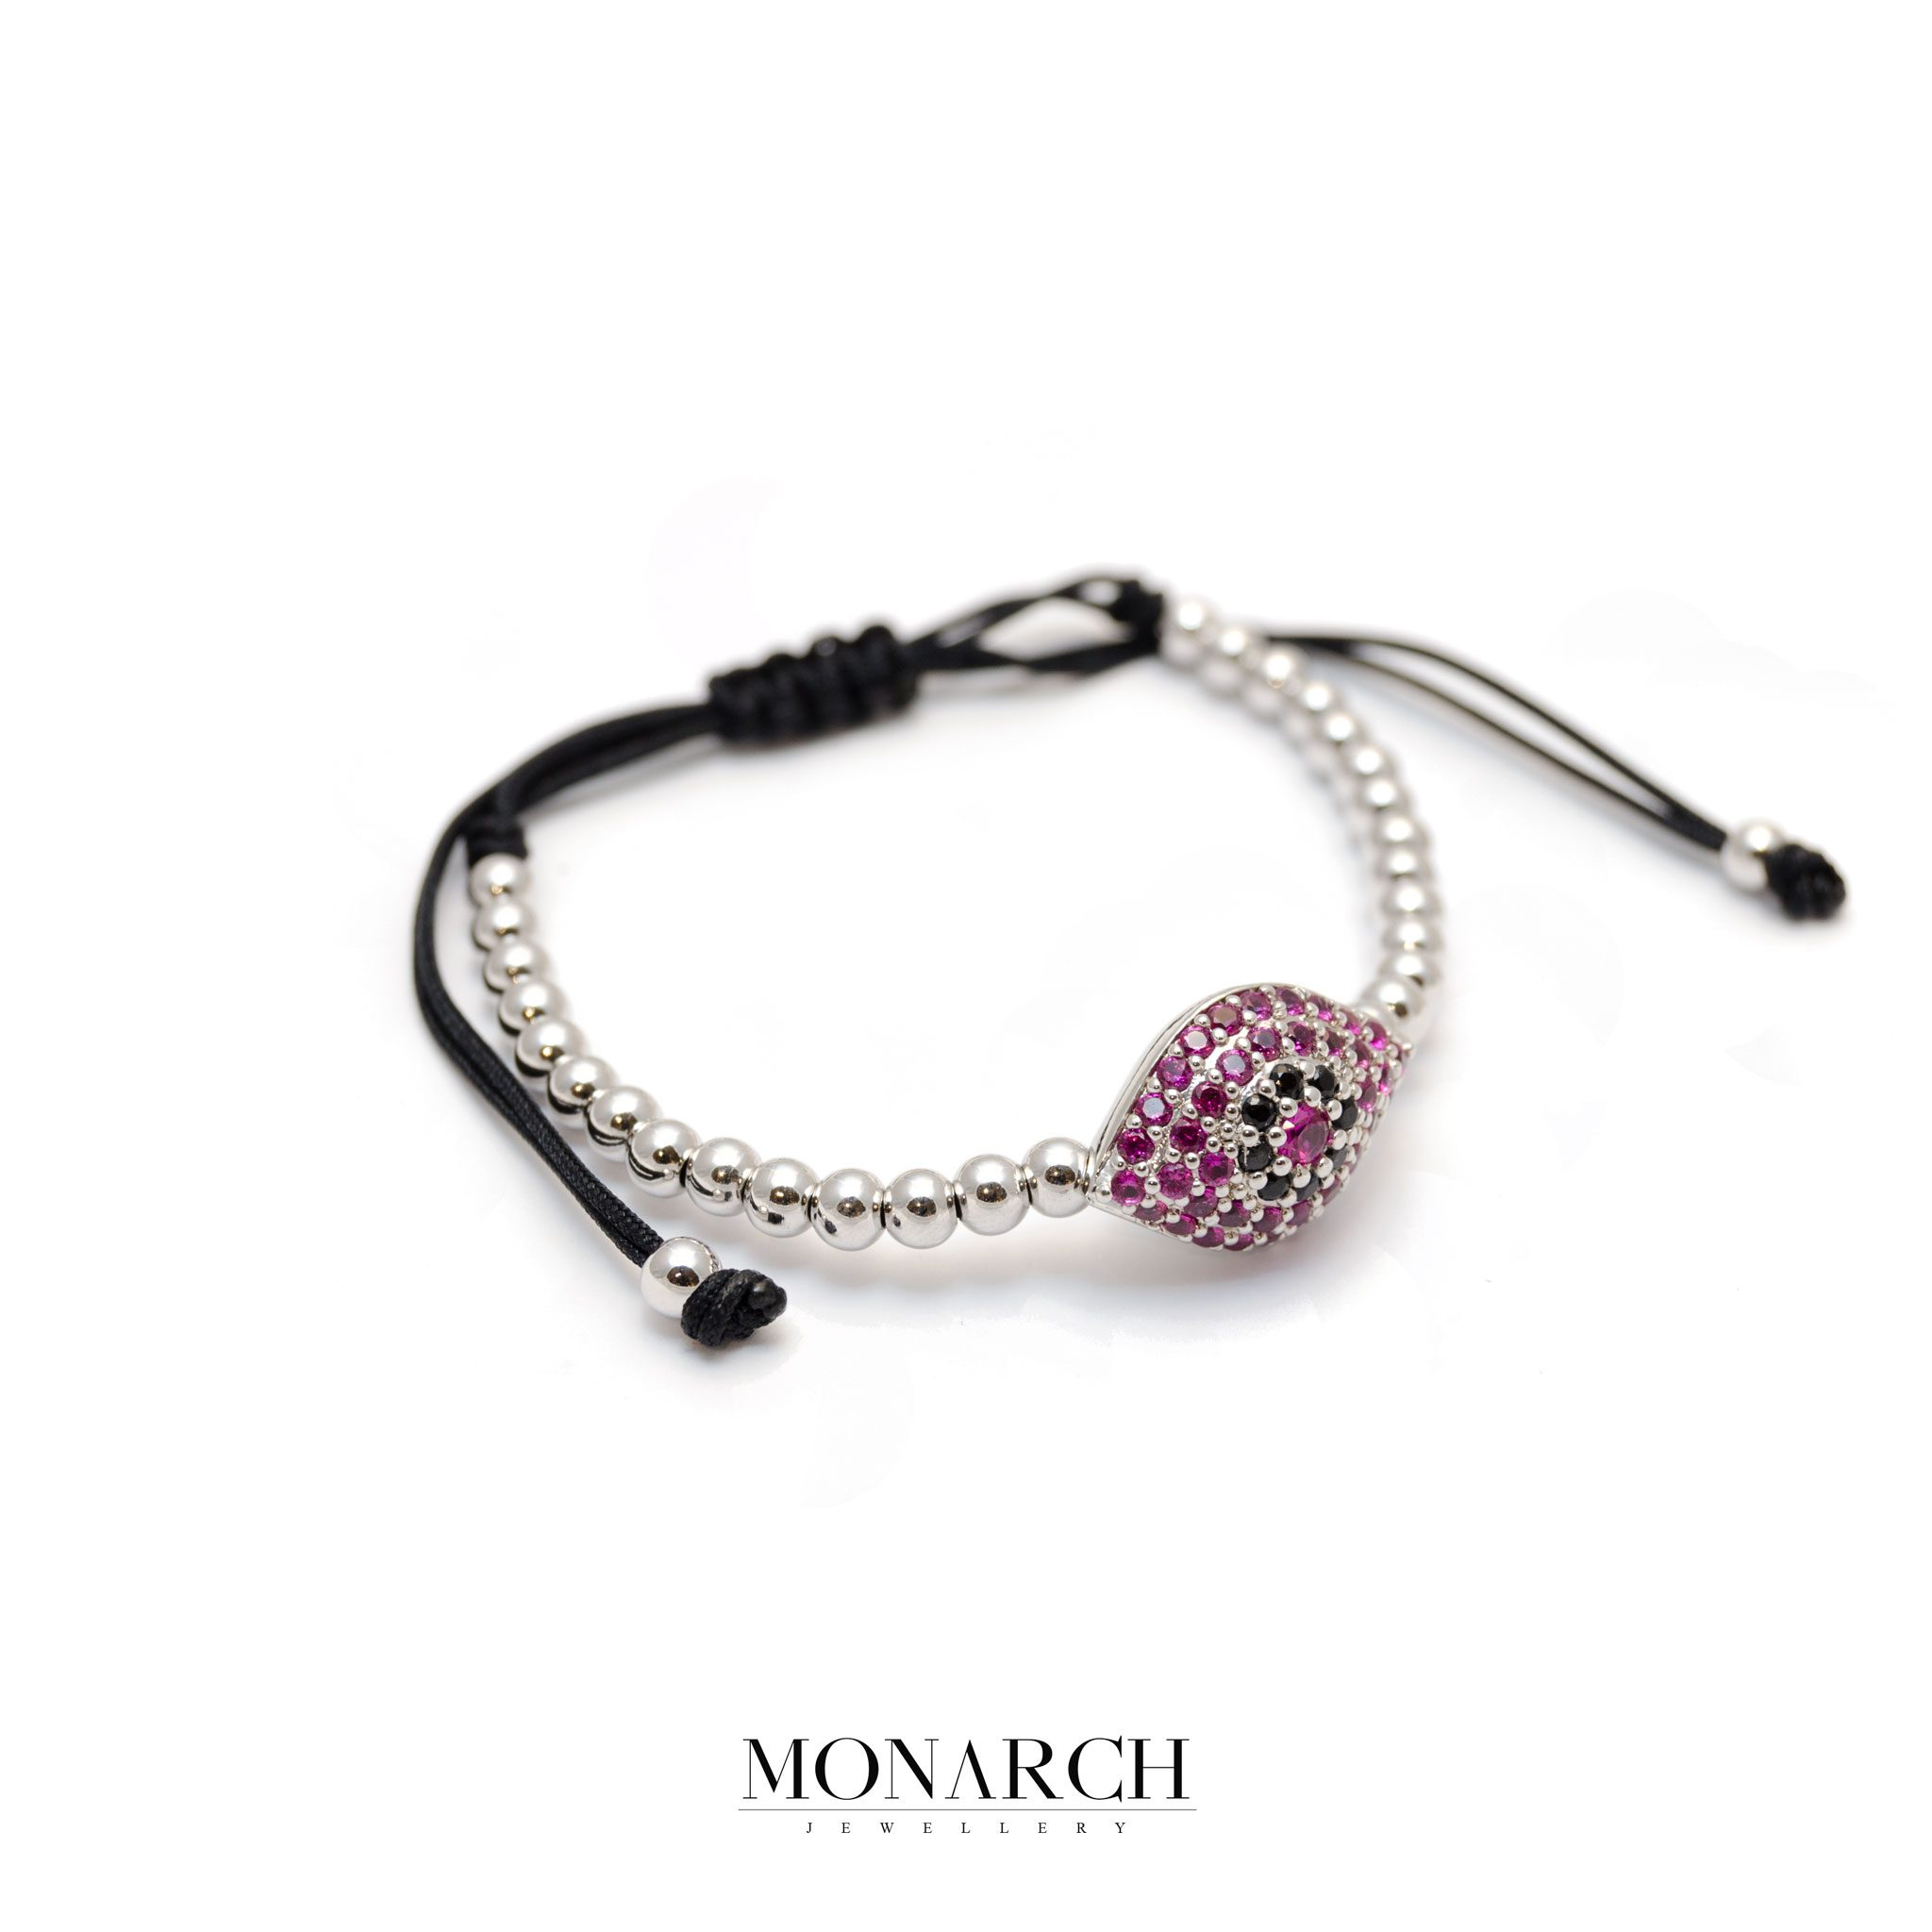 87-Monarch-Jewellery-Silver-Magenta-Evil-Eye-Charm-Macrame-Bracelet-resized